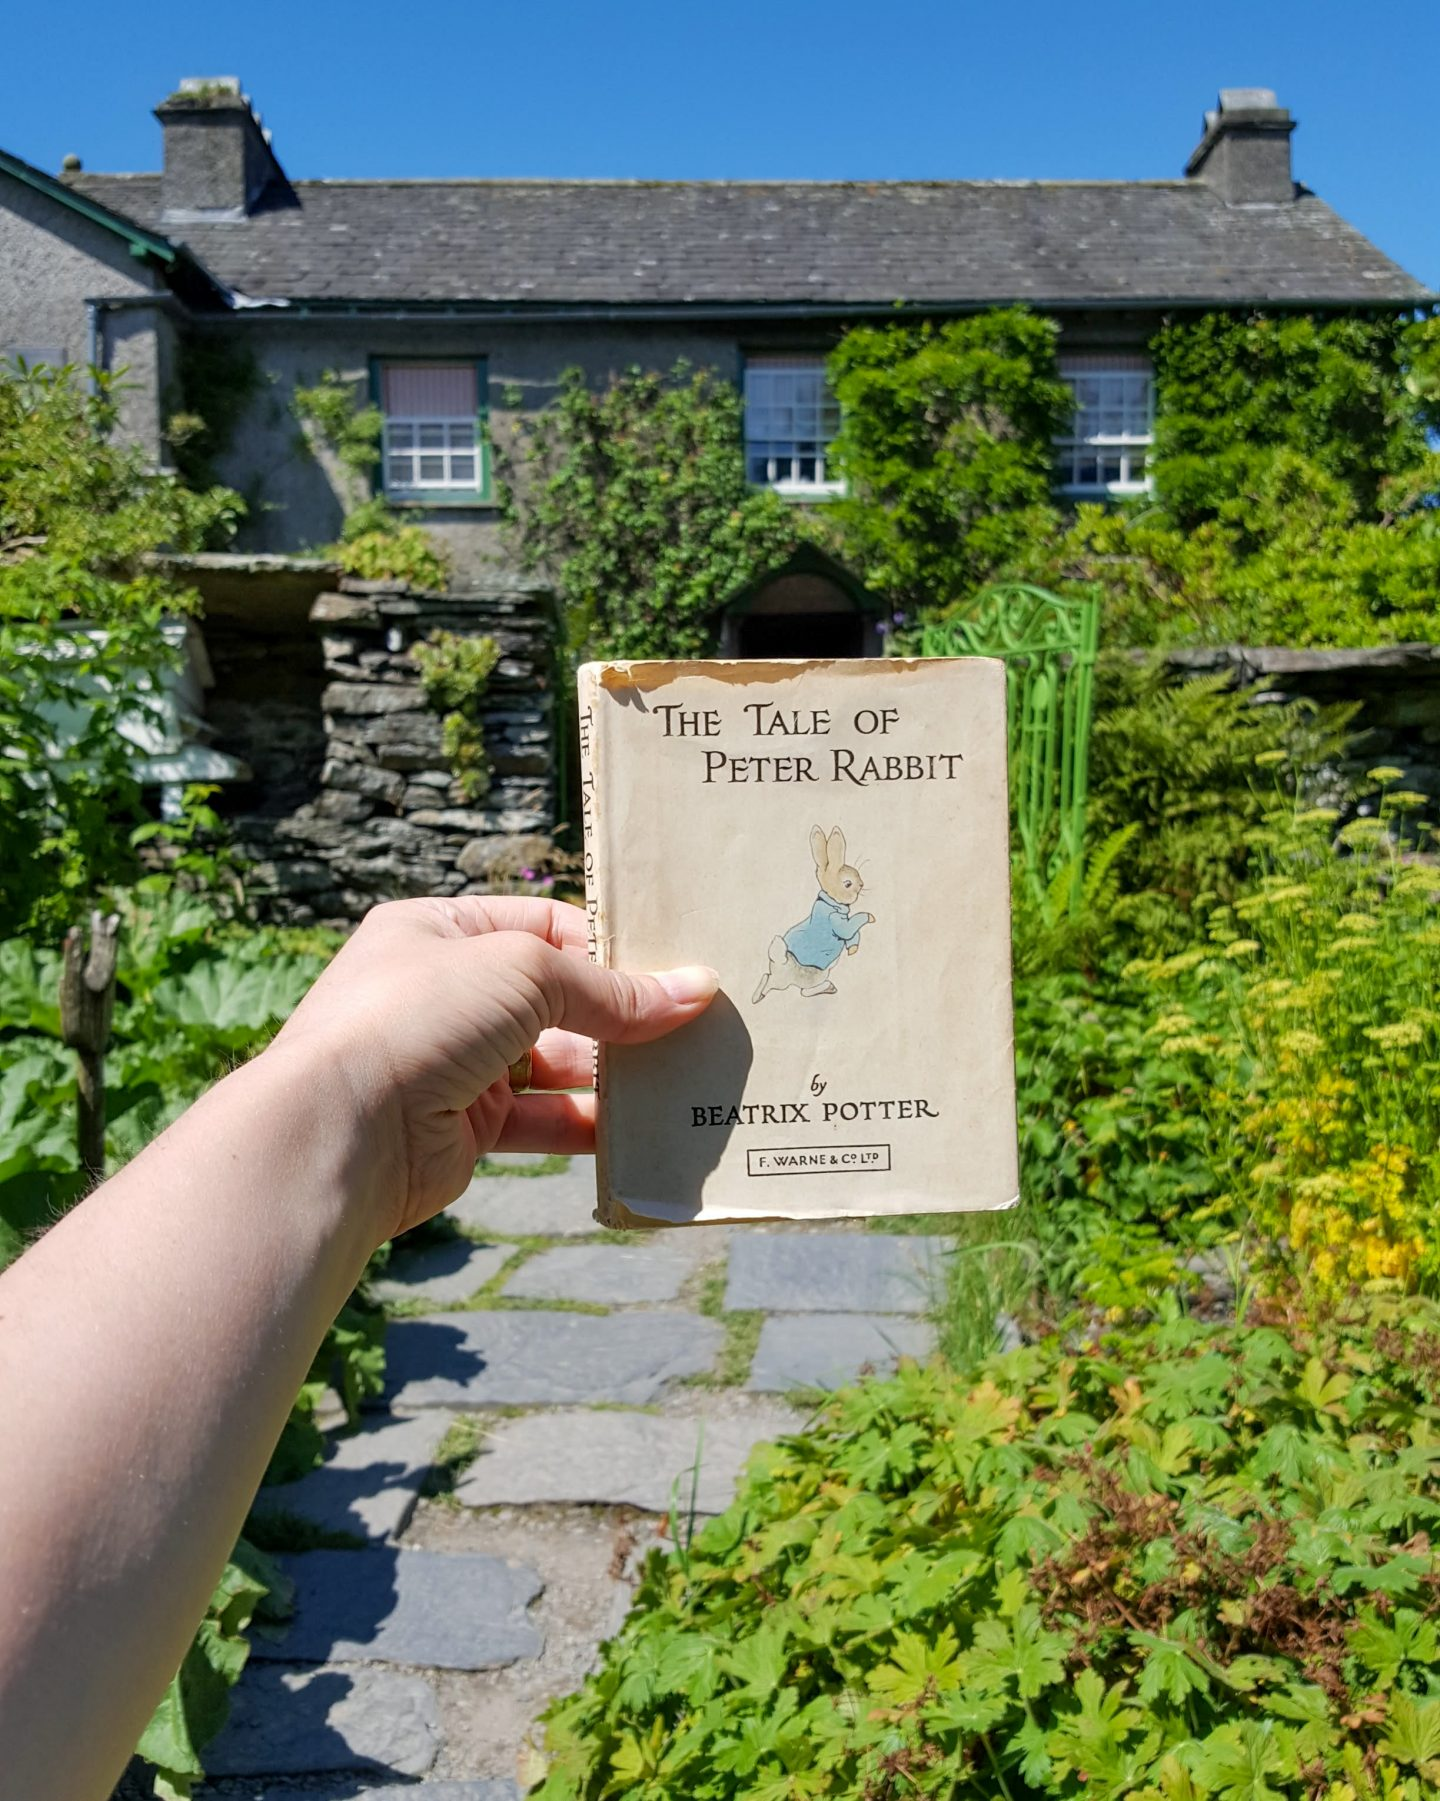 A person holds an old copy of The Tale of Peter Rabbit in front of Hill Top, Beatrix Potter's House, Lake District